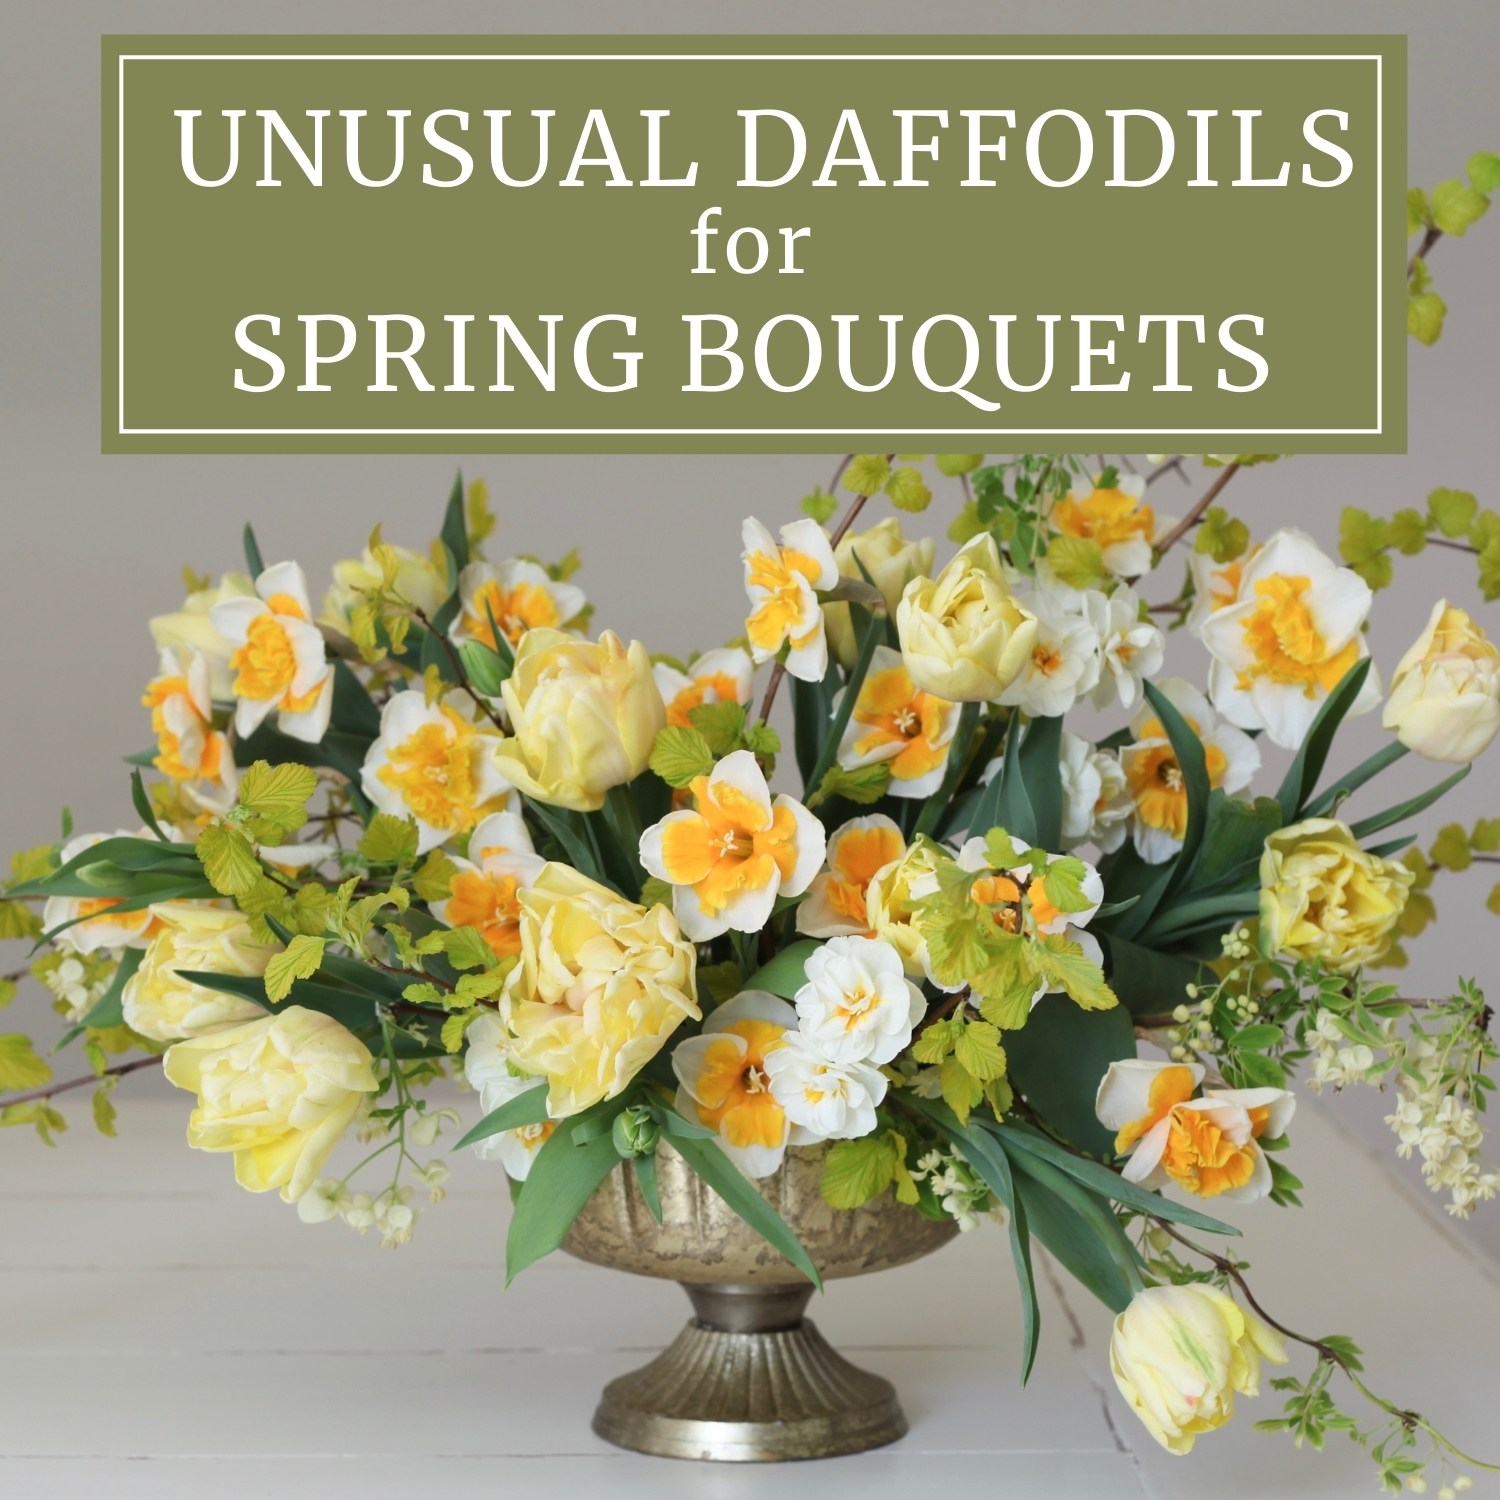 Unusual Daffodils for Spring Bouquets - Longfield Gardens